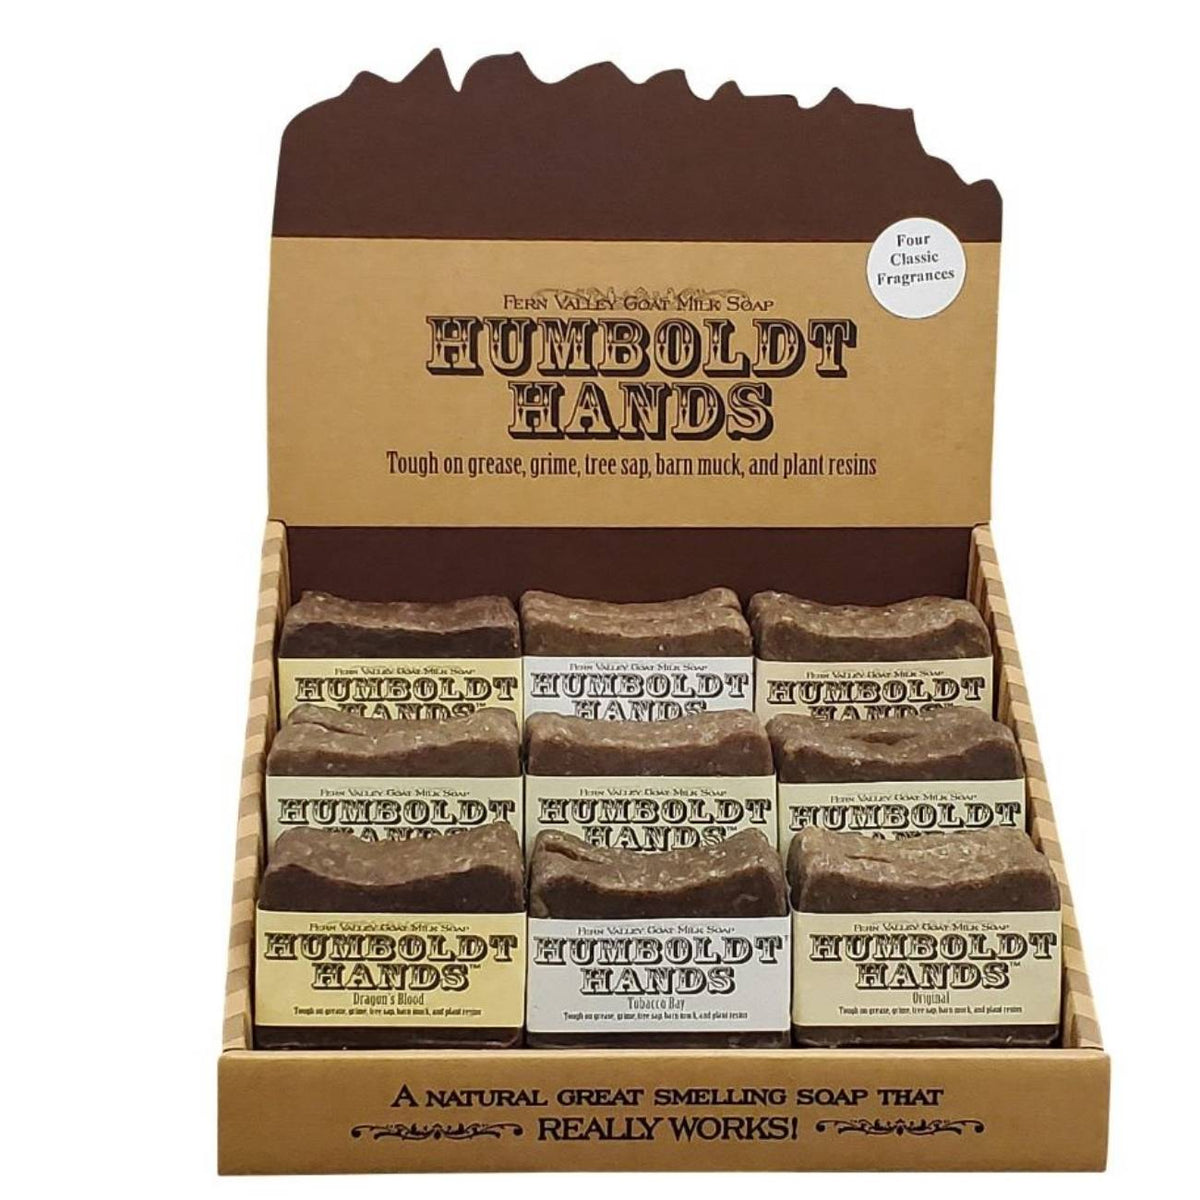 Humboldt Hands 36 Bar Display Box